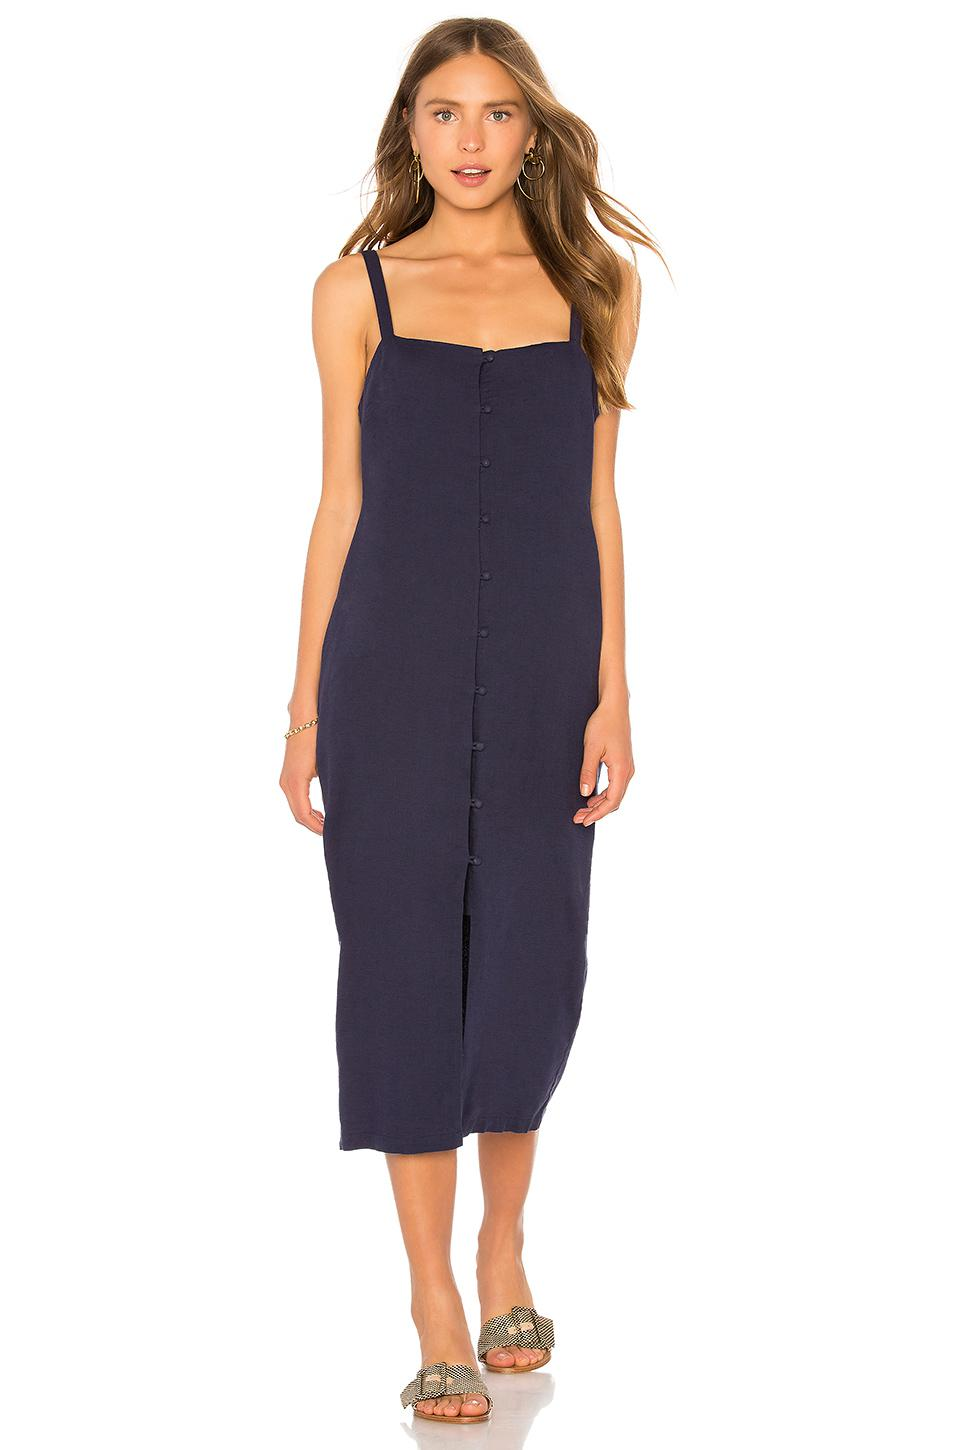 c1d87da3de Tavik Tara Midi Dress in Blue - Lyst